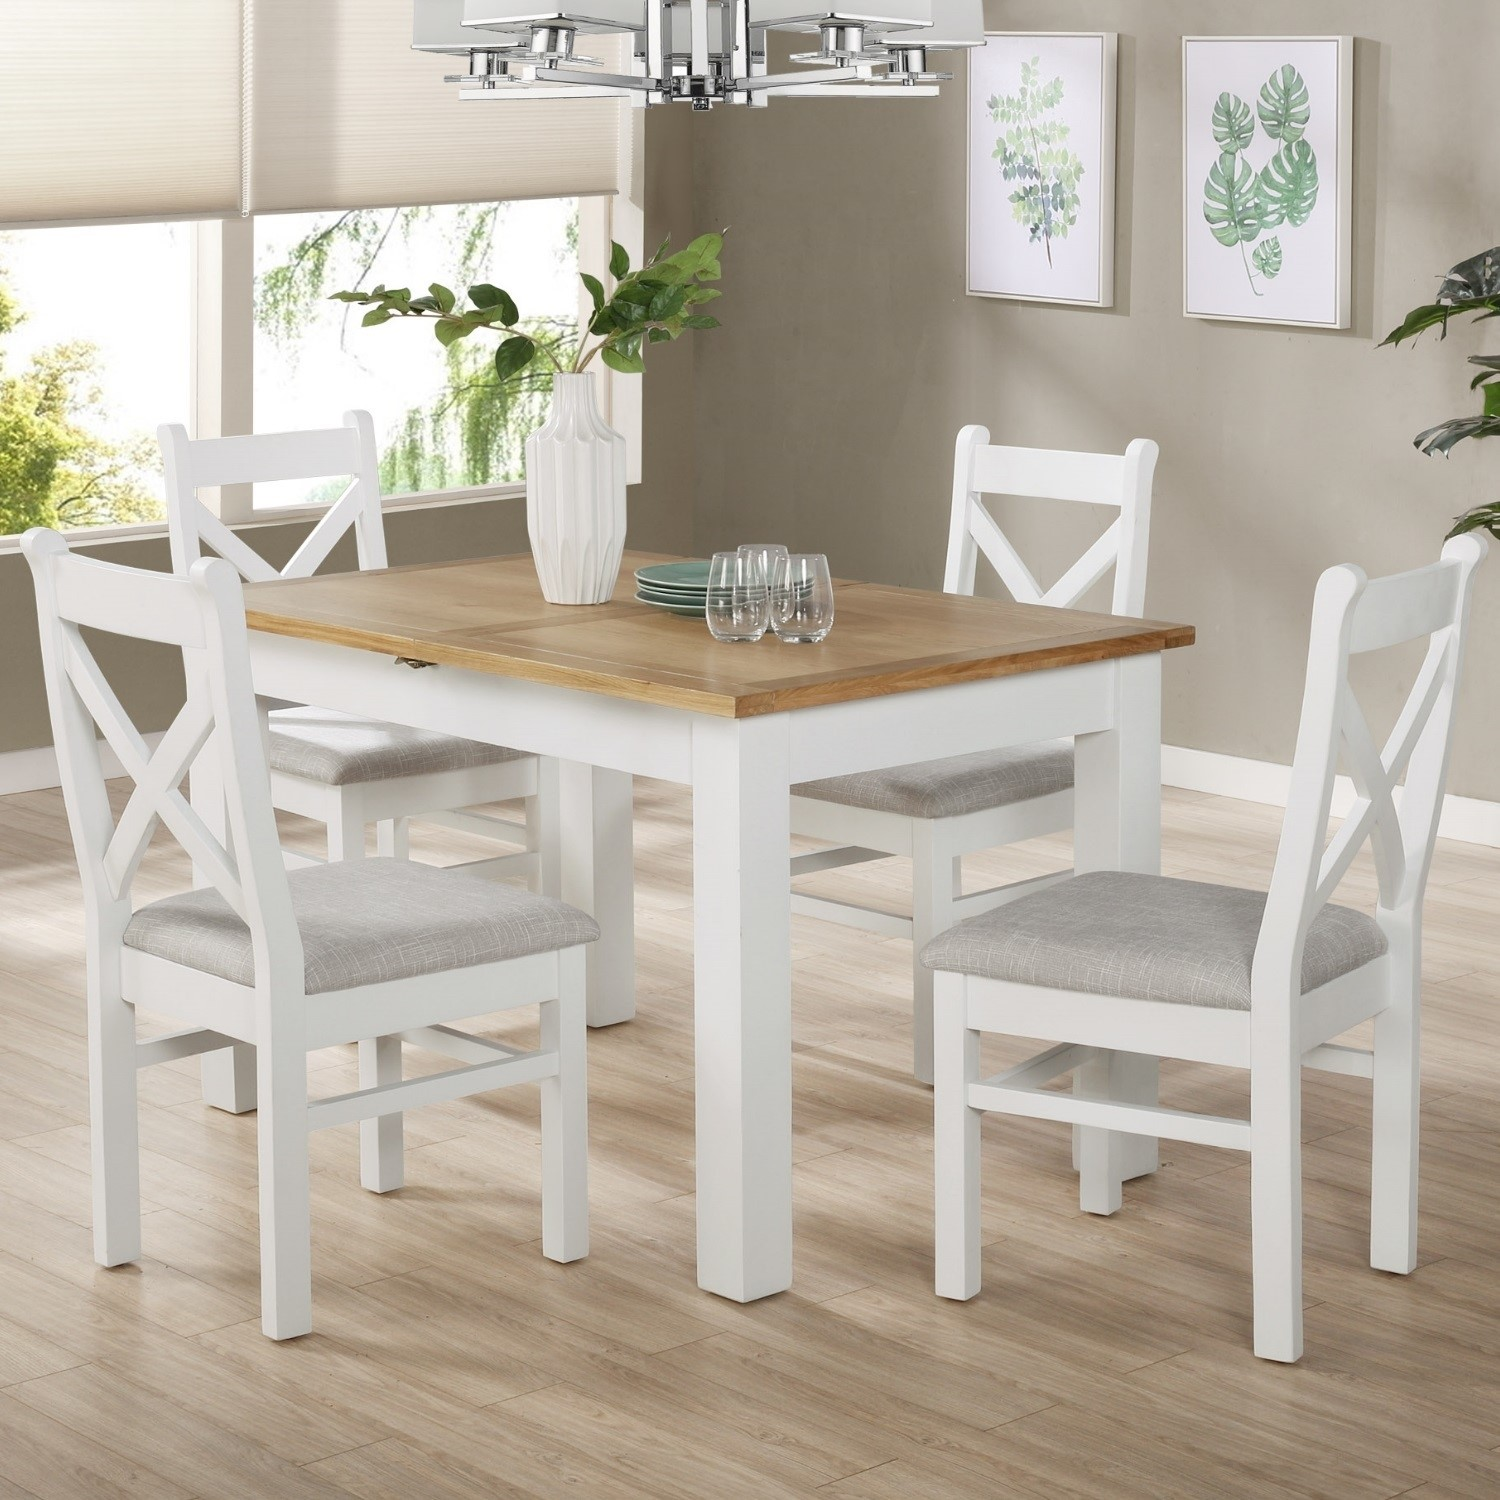 Aylesbury Farmhouse Extendable Dining Table With 4 Dining Chairs In White